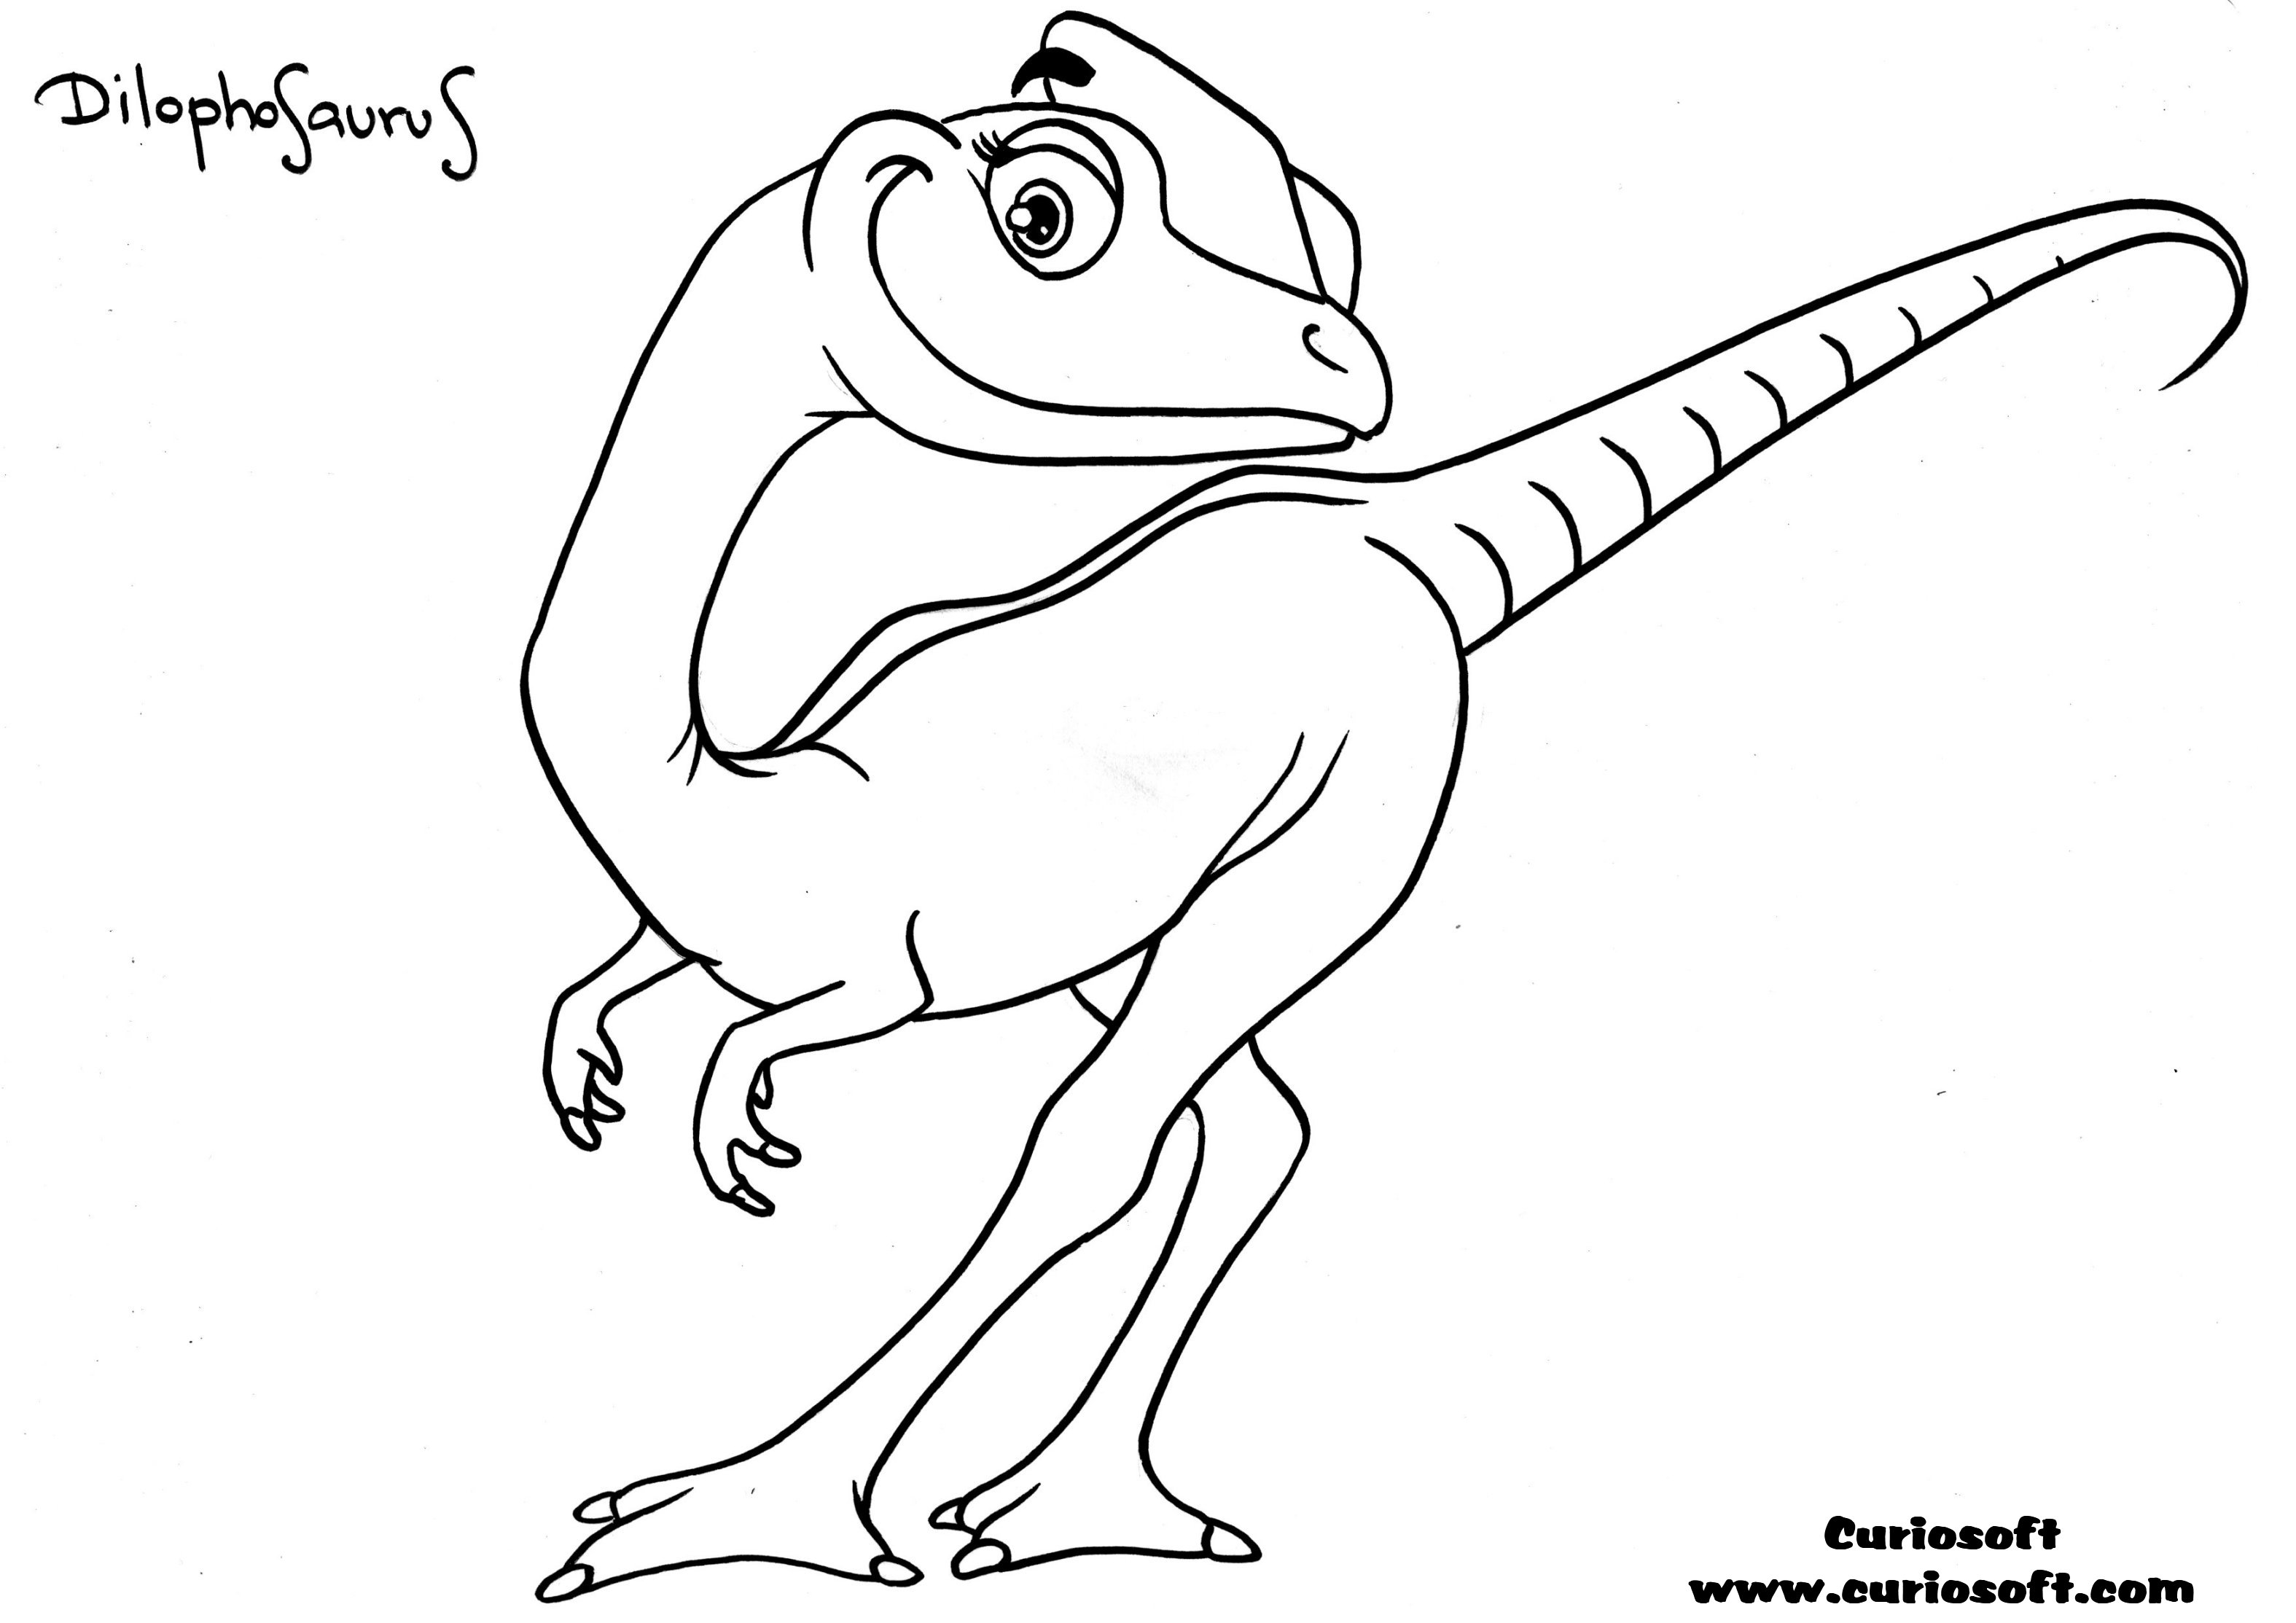 dinosaur facts and coloring pages - photo#17